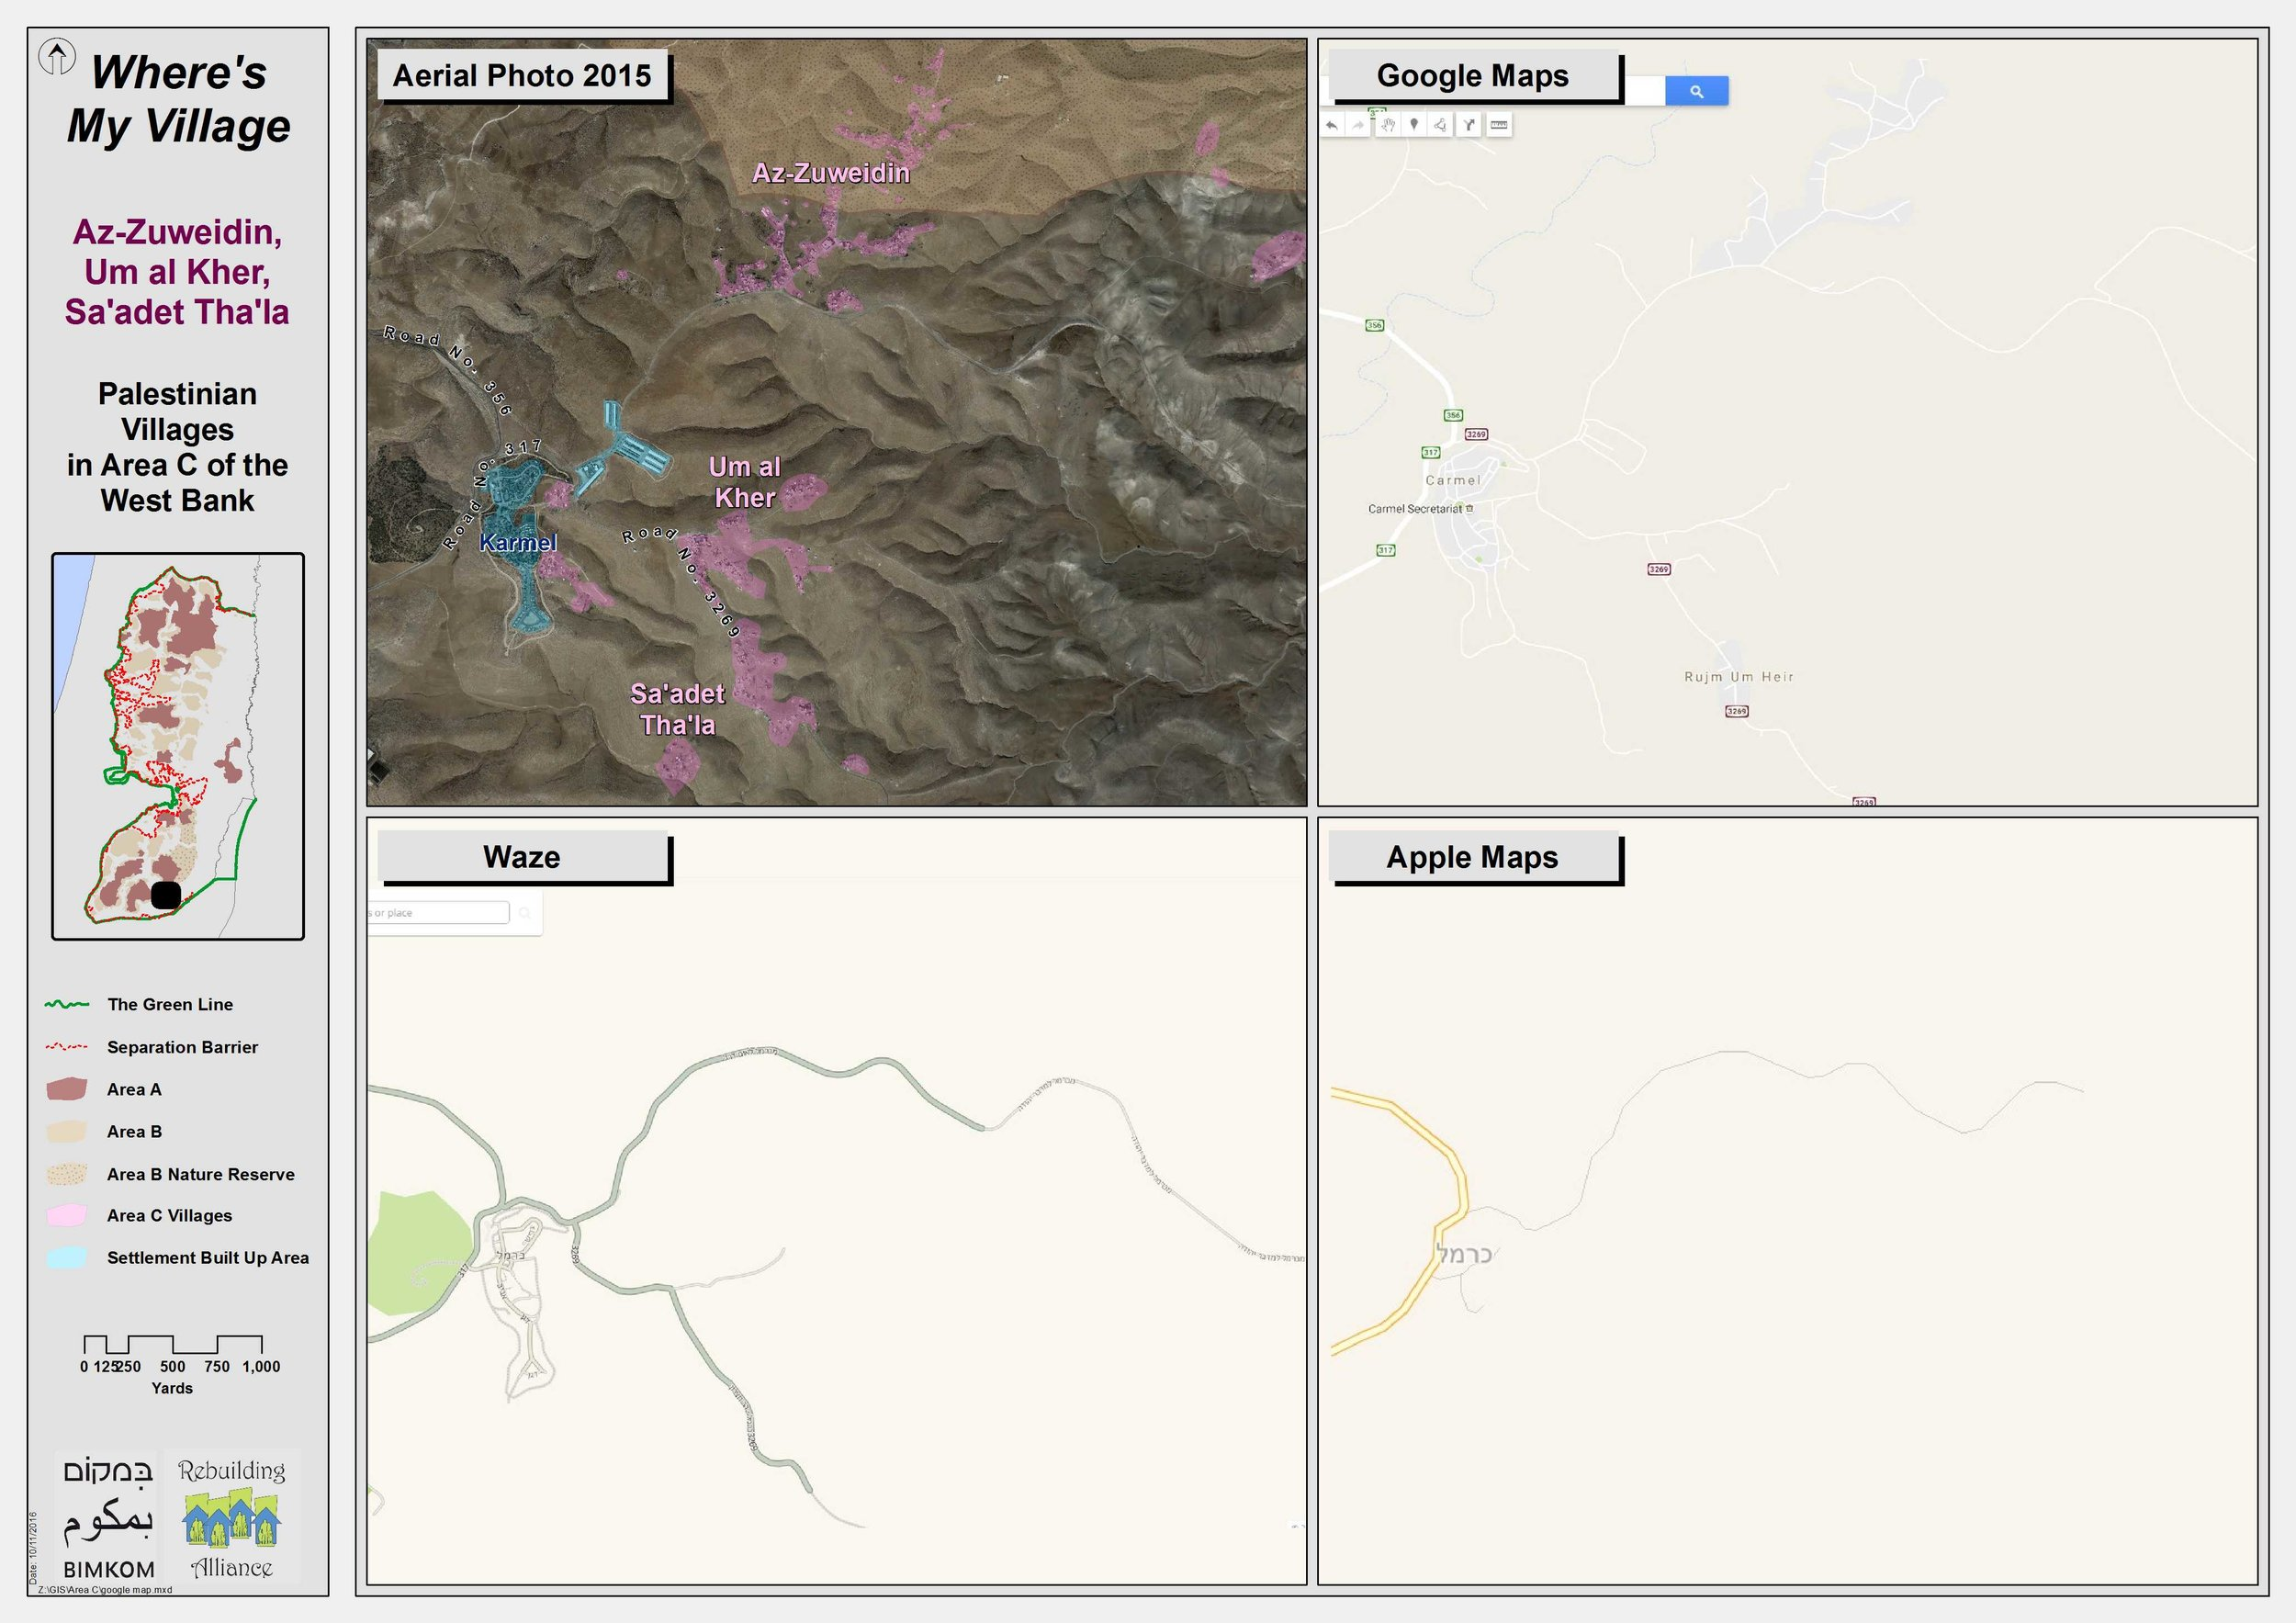 Above is satellite image with Palestinian villages in pink, and Israeli settlements in blue showing the area around the Palestinian village of Umm Al Kheir in the South Hebron Hills. Shown as well are the map images on Google, Apple and Waze.